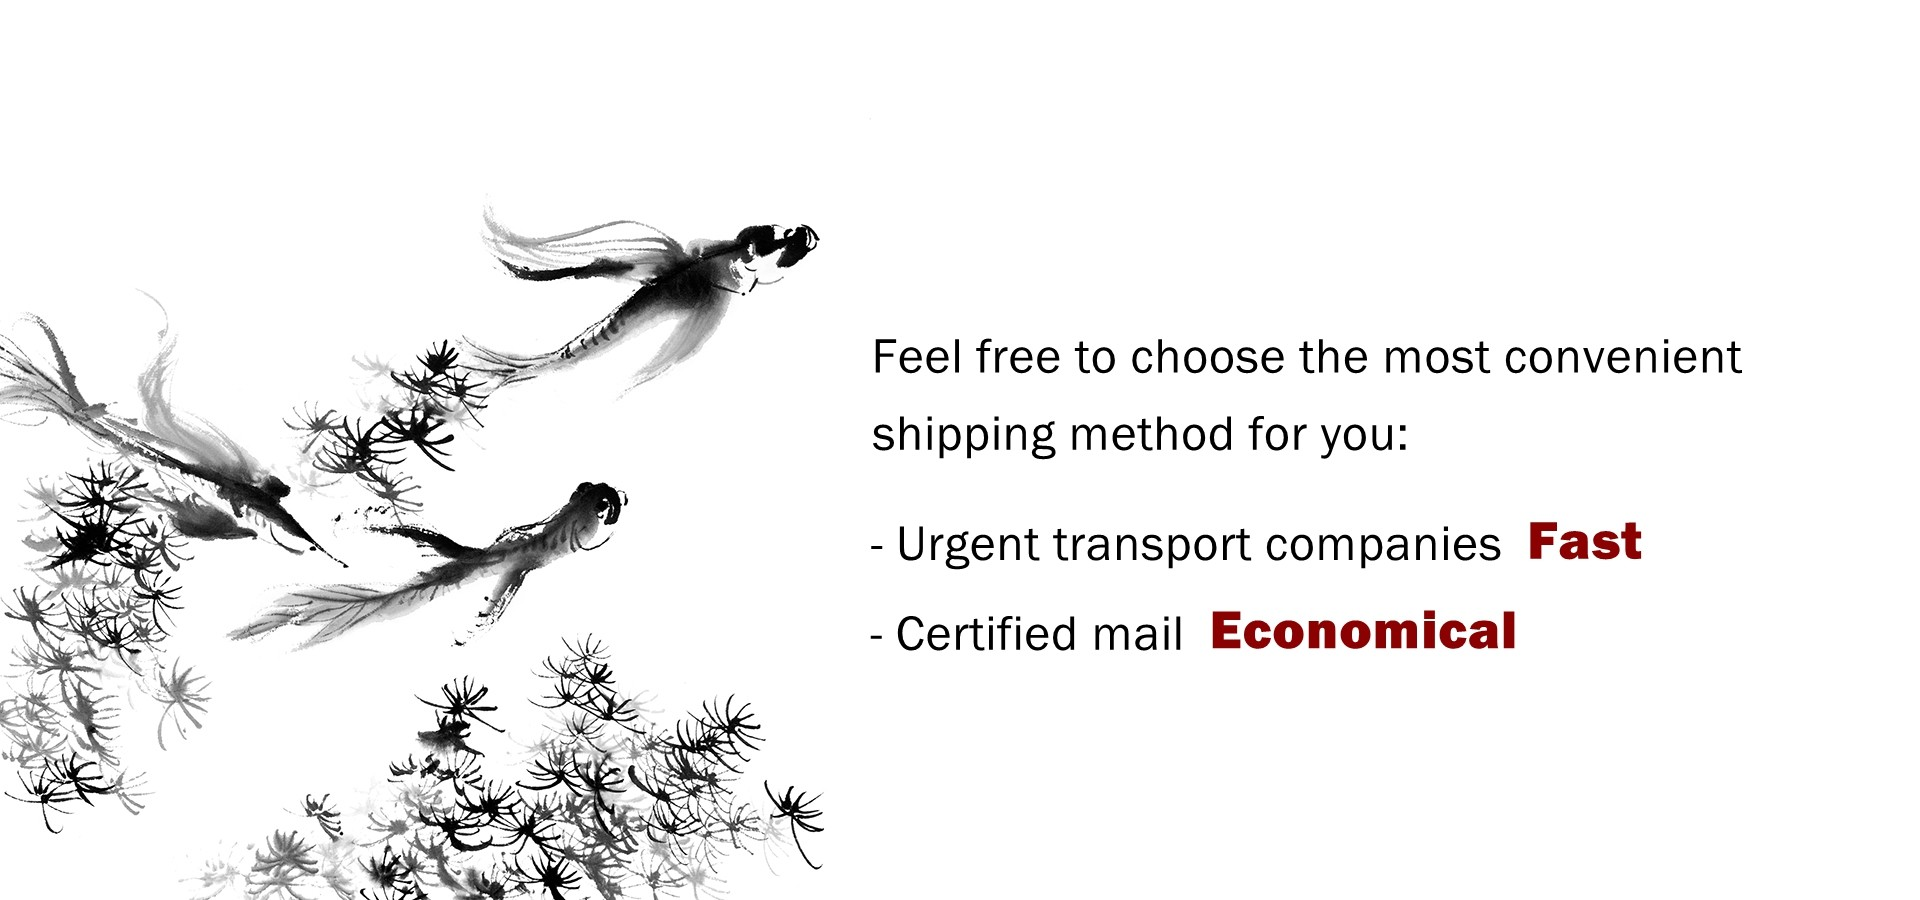 More information about international shipping cost